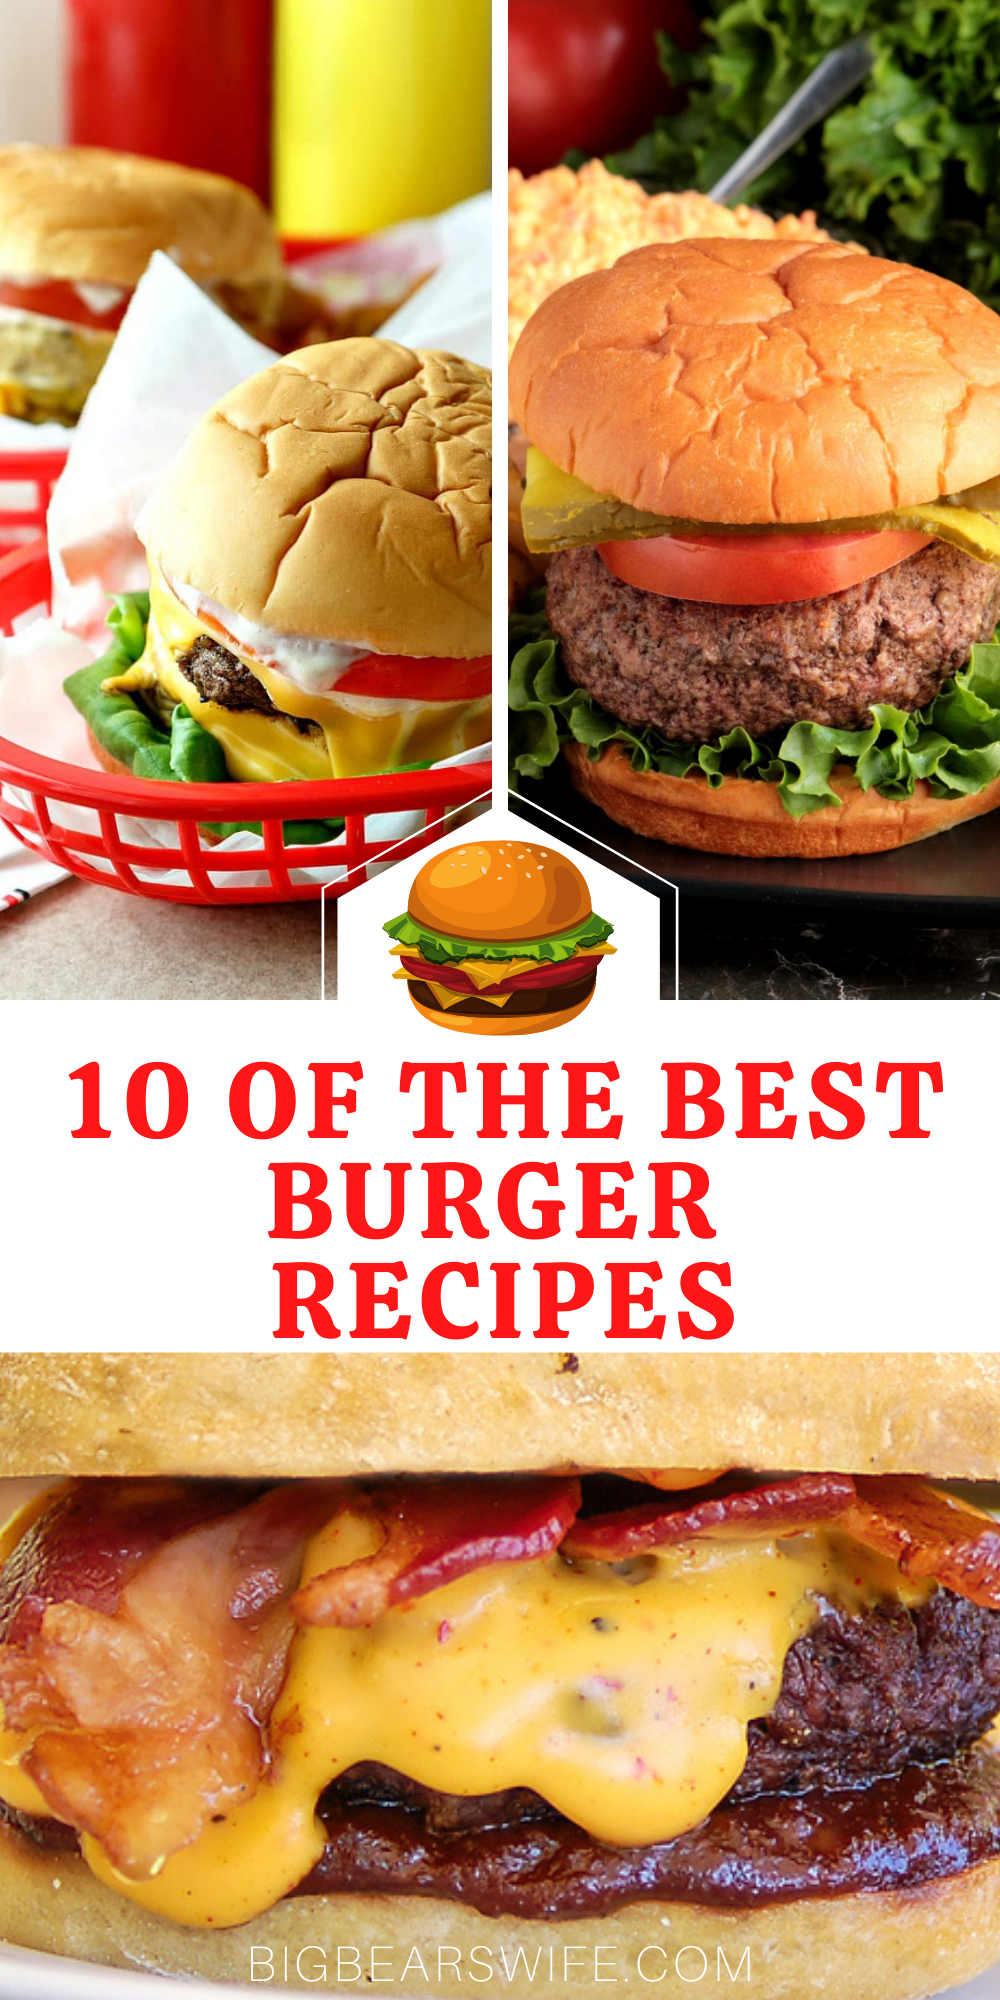 Warm weather is here which means it's time to enjoy the back patio, start up the grill and spend some quality family time outside in the evenings! I've found 10 of the Best Burger Recipes for y'all to try that would be perfect for lunch or dinner.   via @bigbearswife